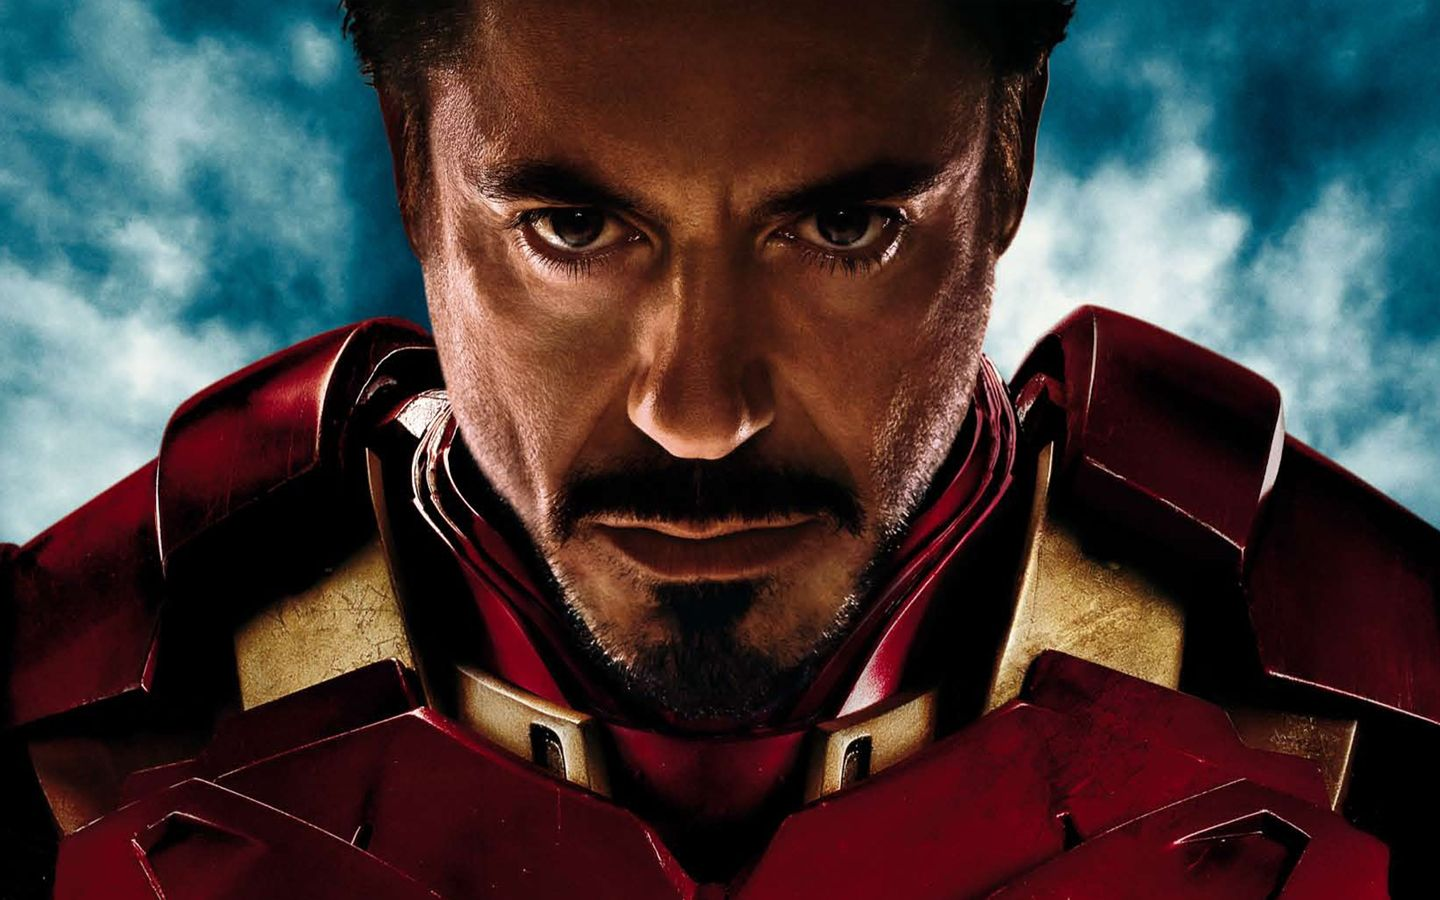 tony stark images hd - photo #15